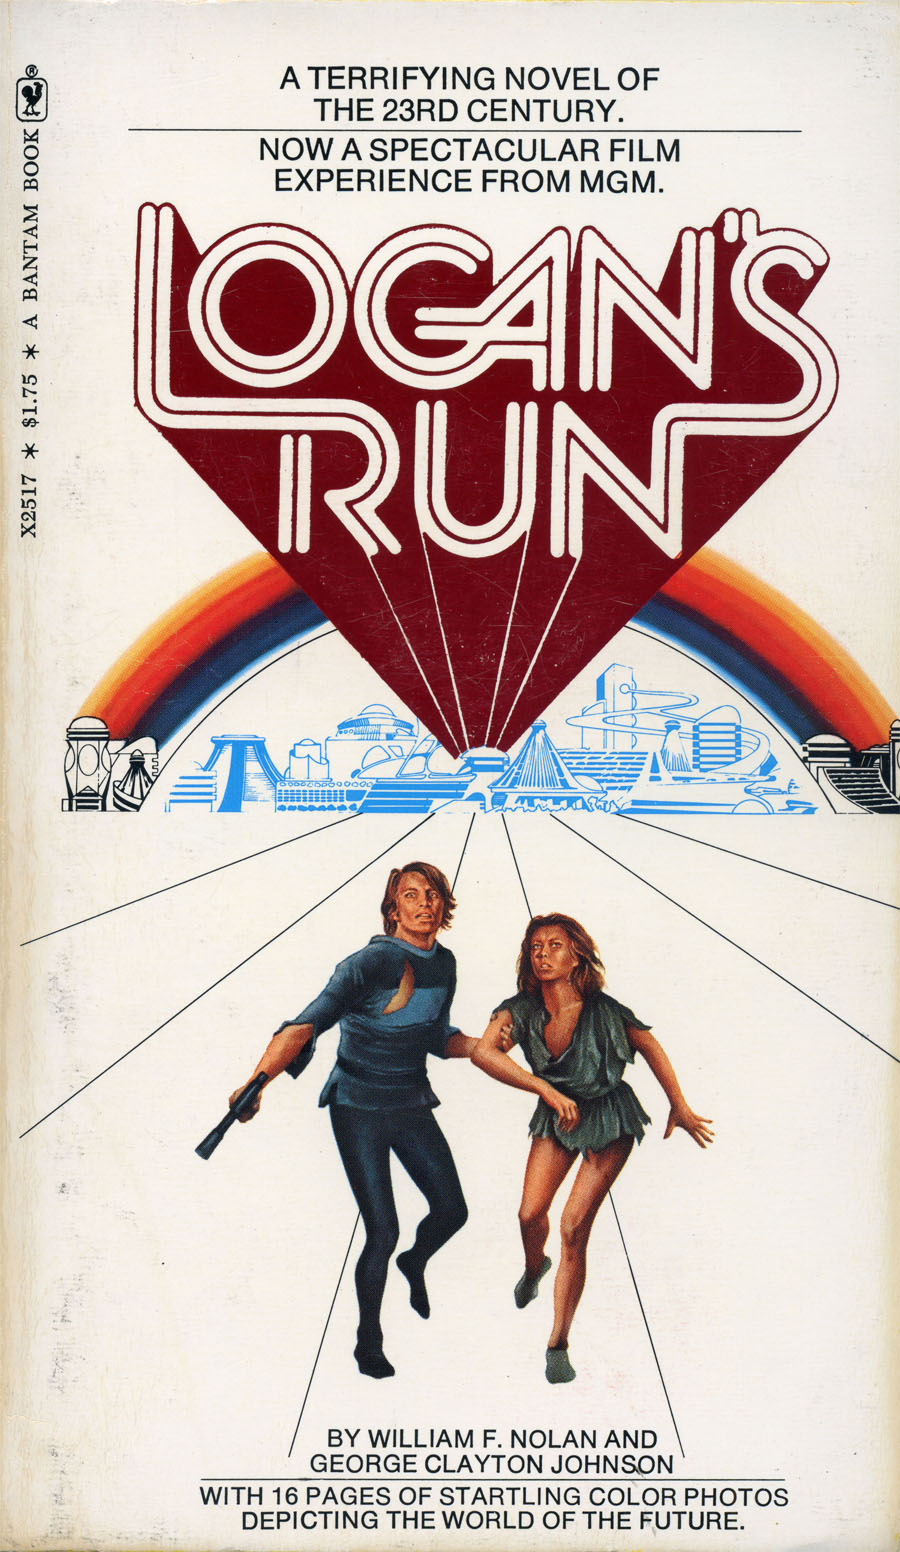 LOGAN'S RUN Book Review: A Lost Science Fiction Classic ...